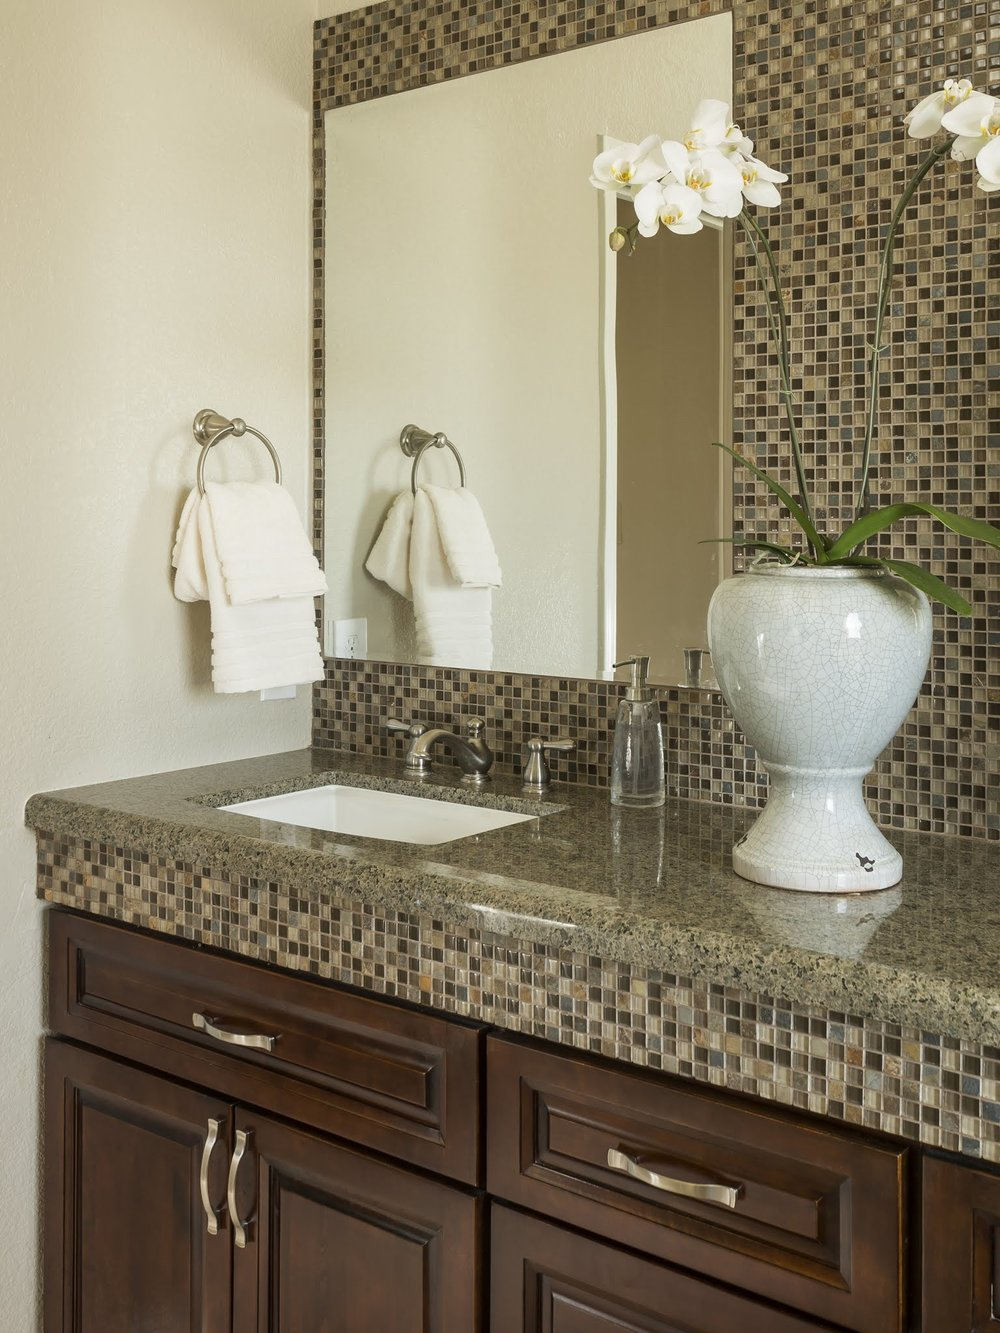 Accent tile to add interest at vanity -